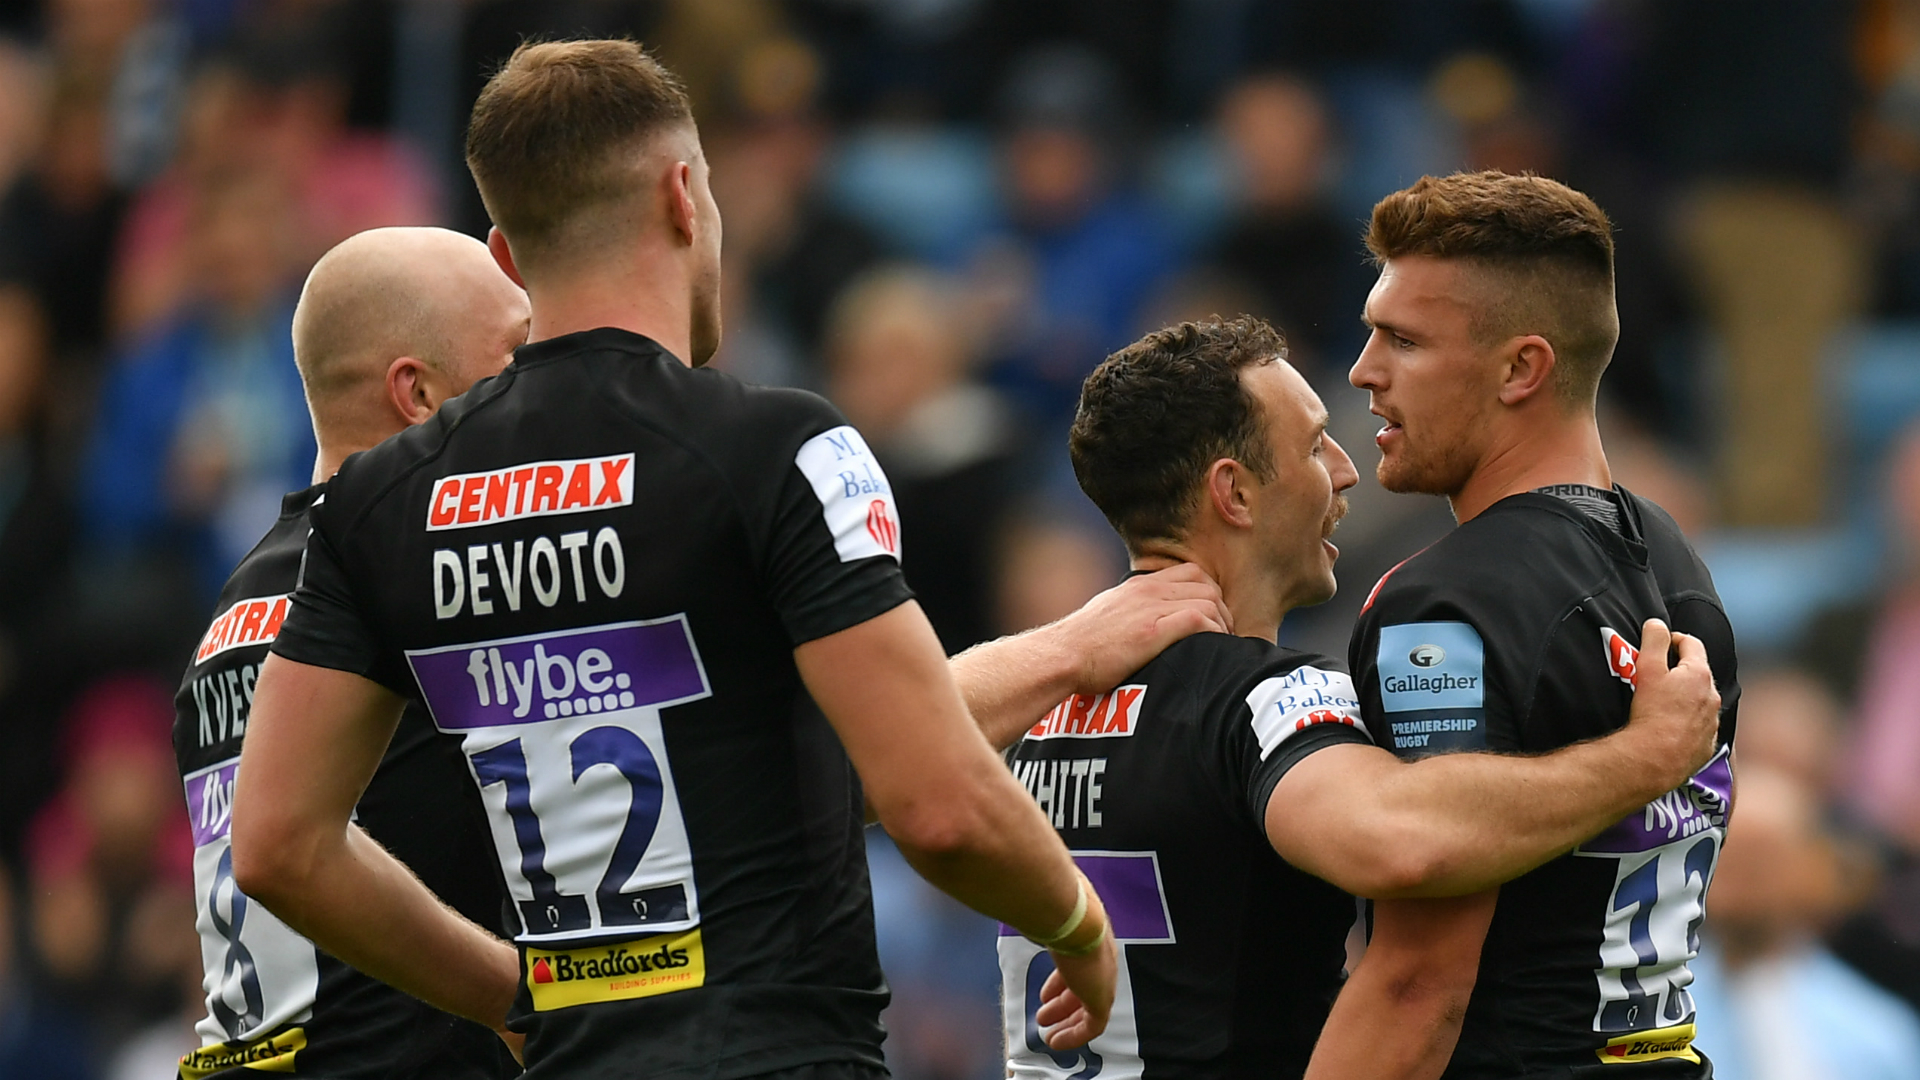 Chiefs finish top as Saints edge out Quins for fourth